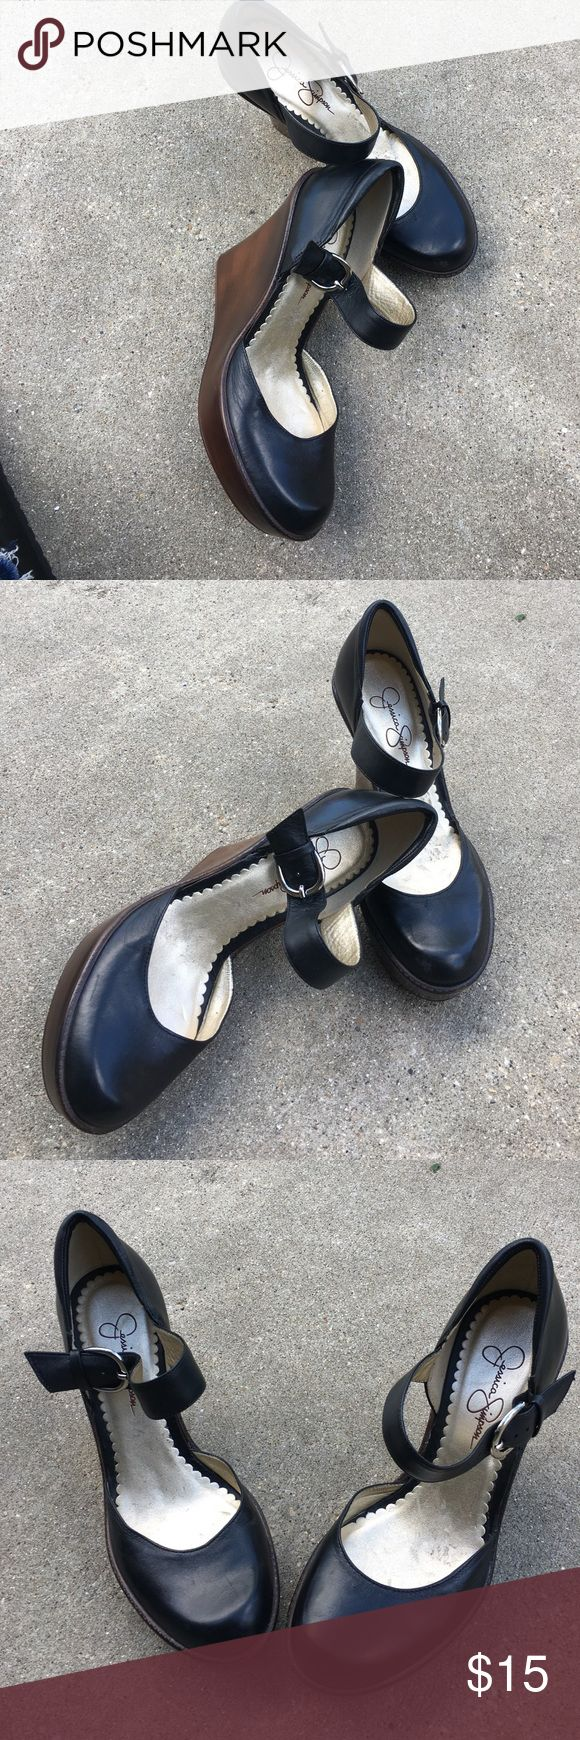 New Jessica Simpson Mary Jane Heels - Sz 7.5 New Jessica Simpson Mary Jane Heels - Sz 7.5 Jessica Simpson Shoes Wedges